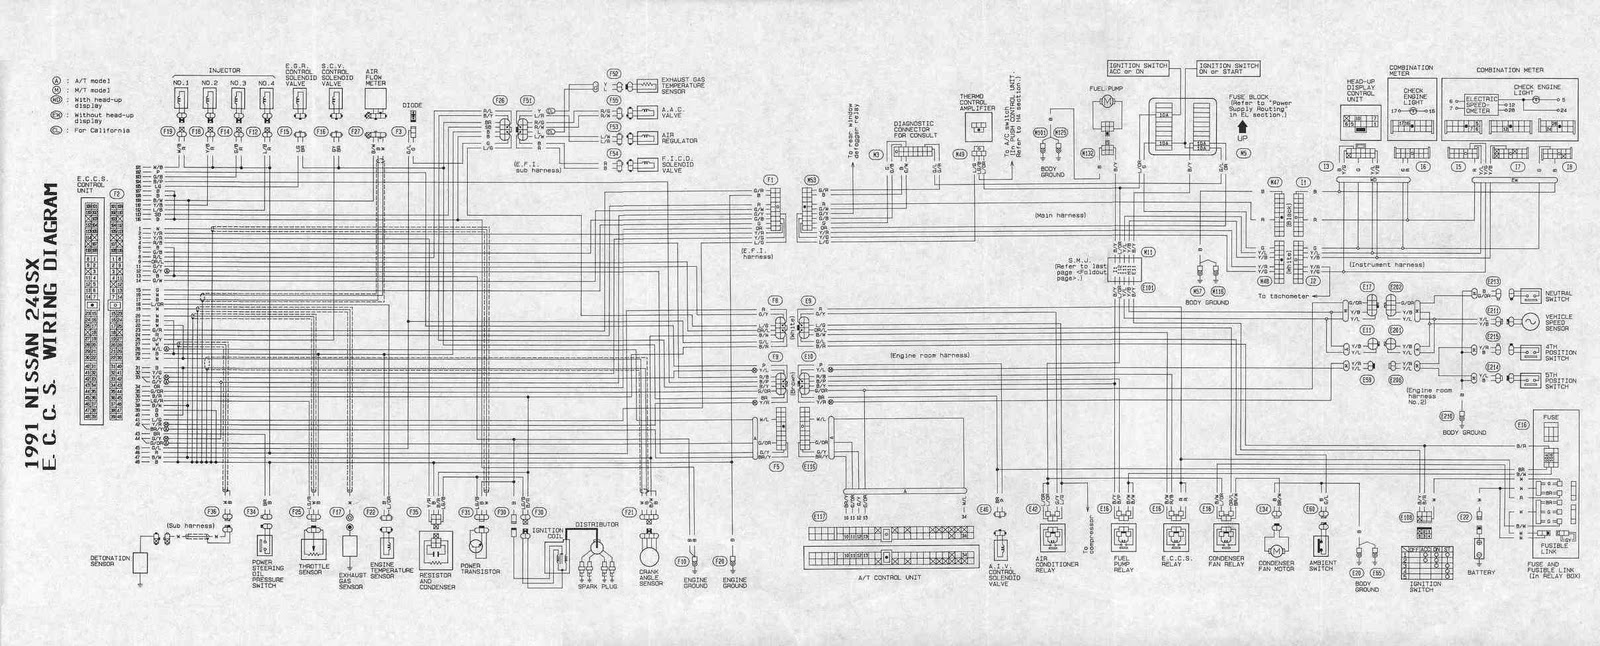 DIAGRAM] S14 240sx Wiring Diagram Free Picture Schematic FULL Version HD  Quality Picture Schematic - SCHEMATICPCBDESIGN.ANTONIOVERGARA.ITAntonio Vergara